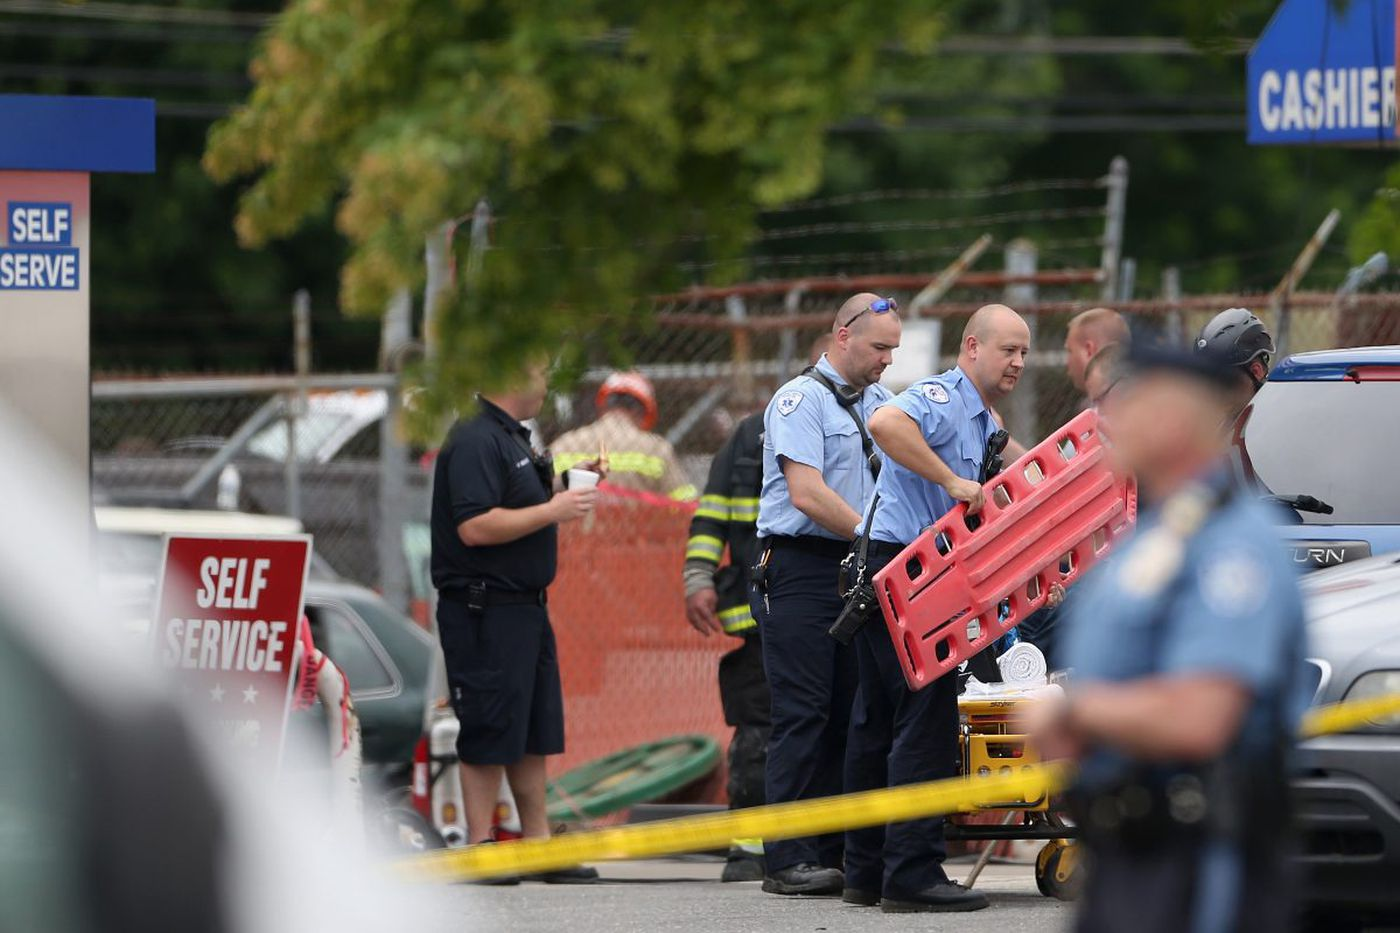 Bensalem PD: Crews recover body of gas-station owner killed in explosion